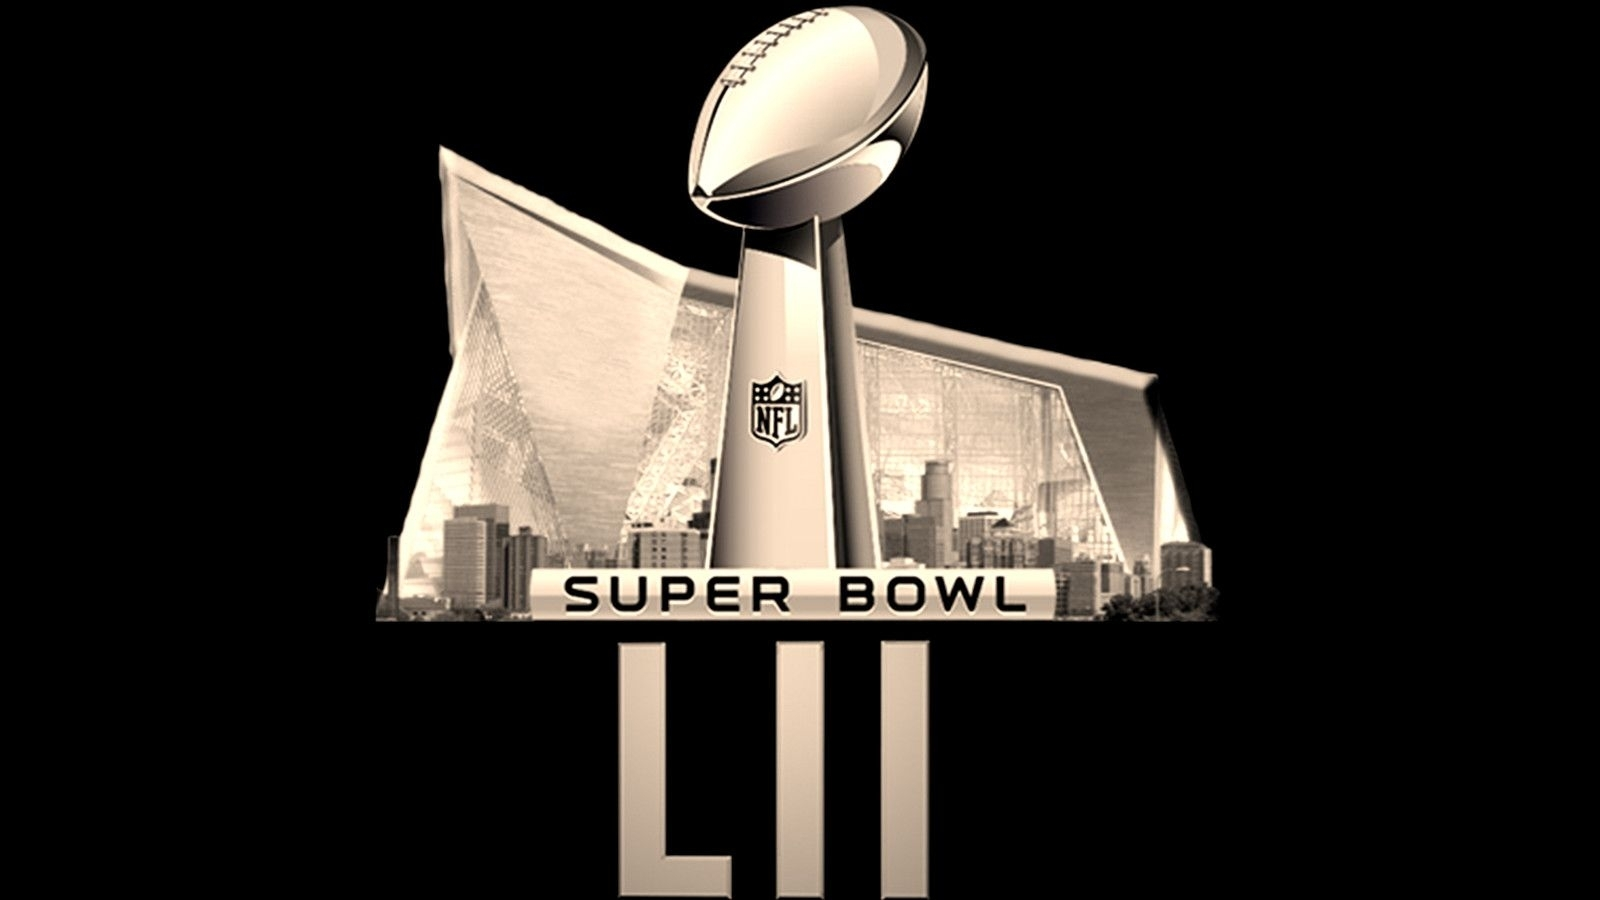 10 Latest Super Bowl Lii Wallpaper FULL HD 1920×1080 For PC Background